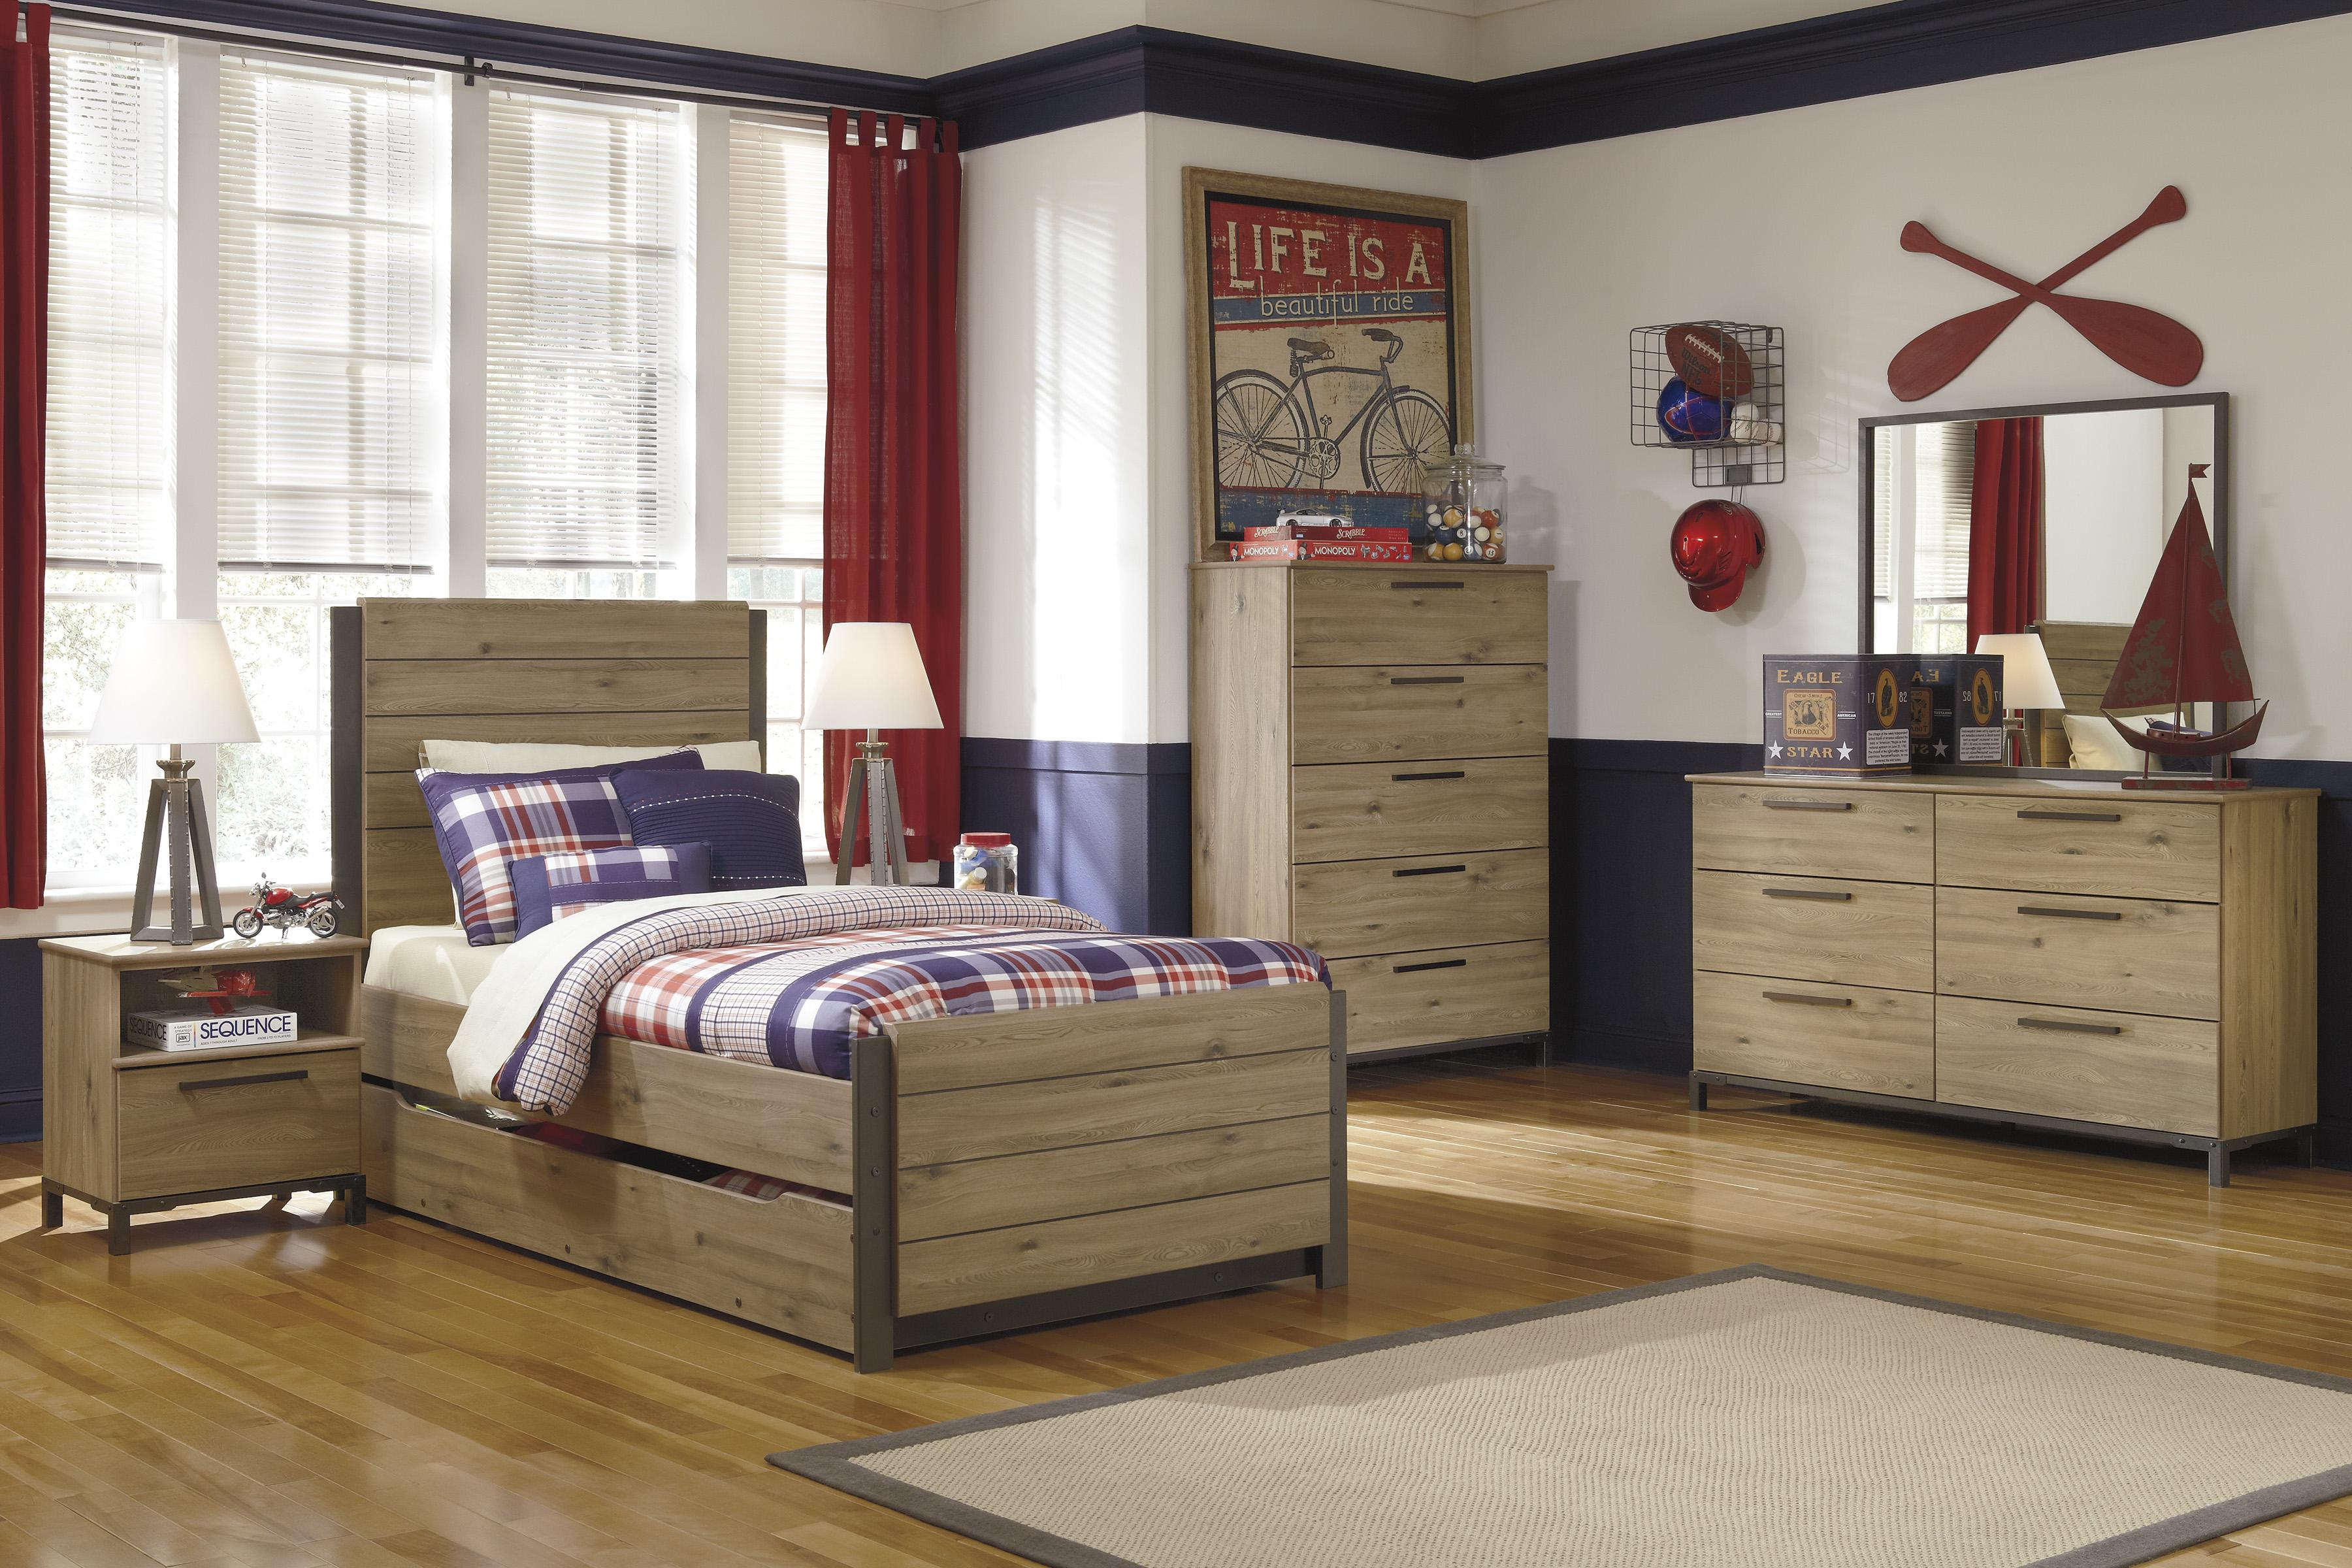 Signature Design by Ashley Dexifield Twin Bedroom Group - Item Number: B298 T Bedroom Group 3